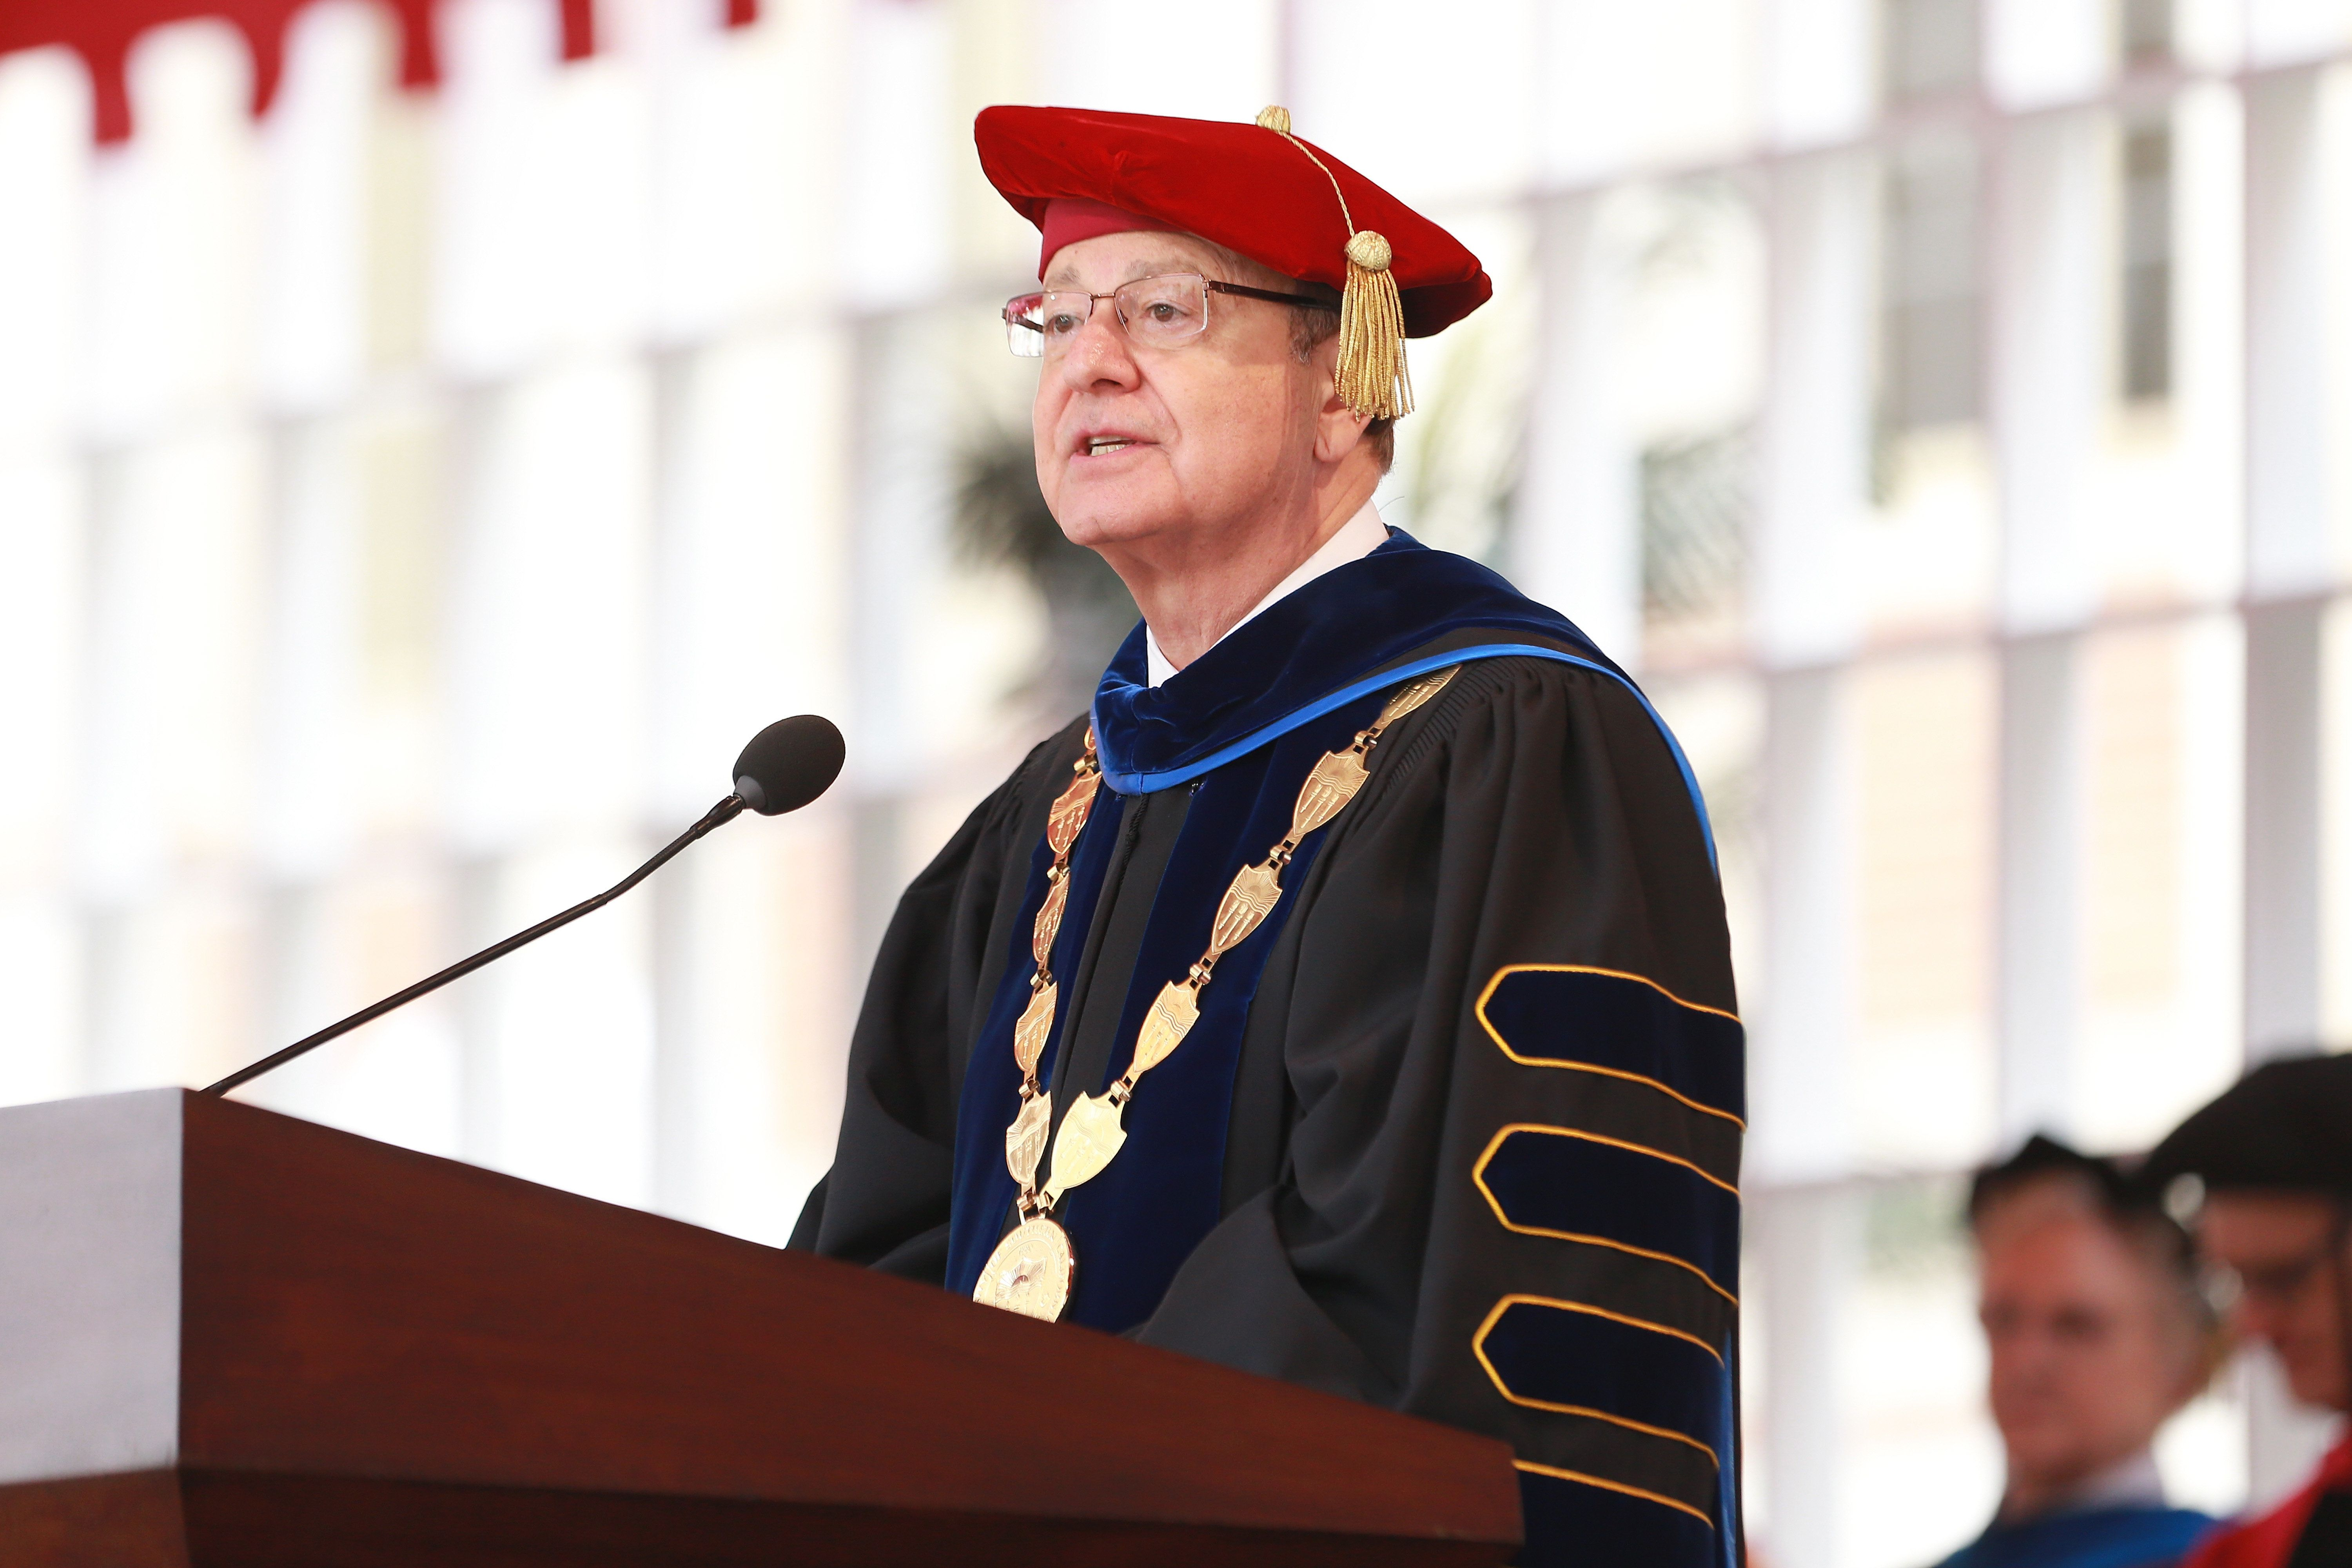 USC president C.L. Max Nikias at the school's commencement ceremony on May 11.